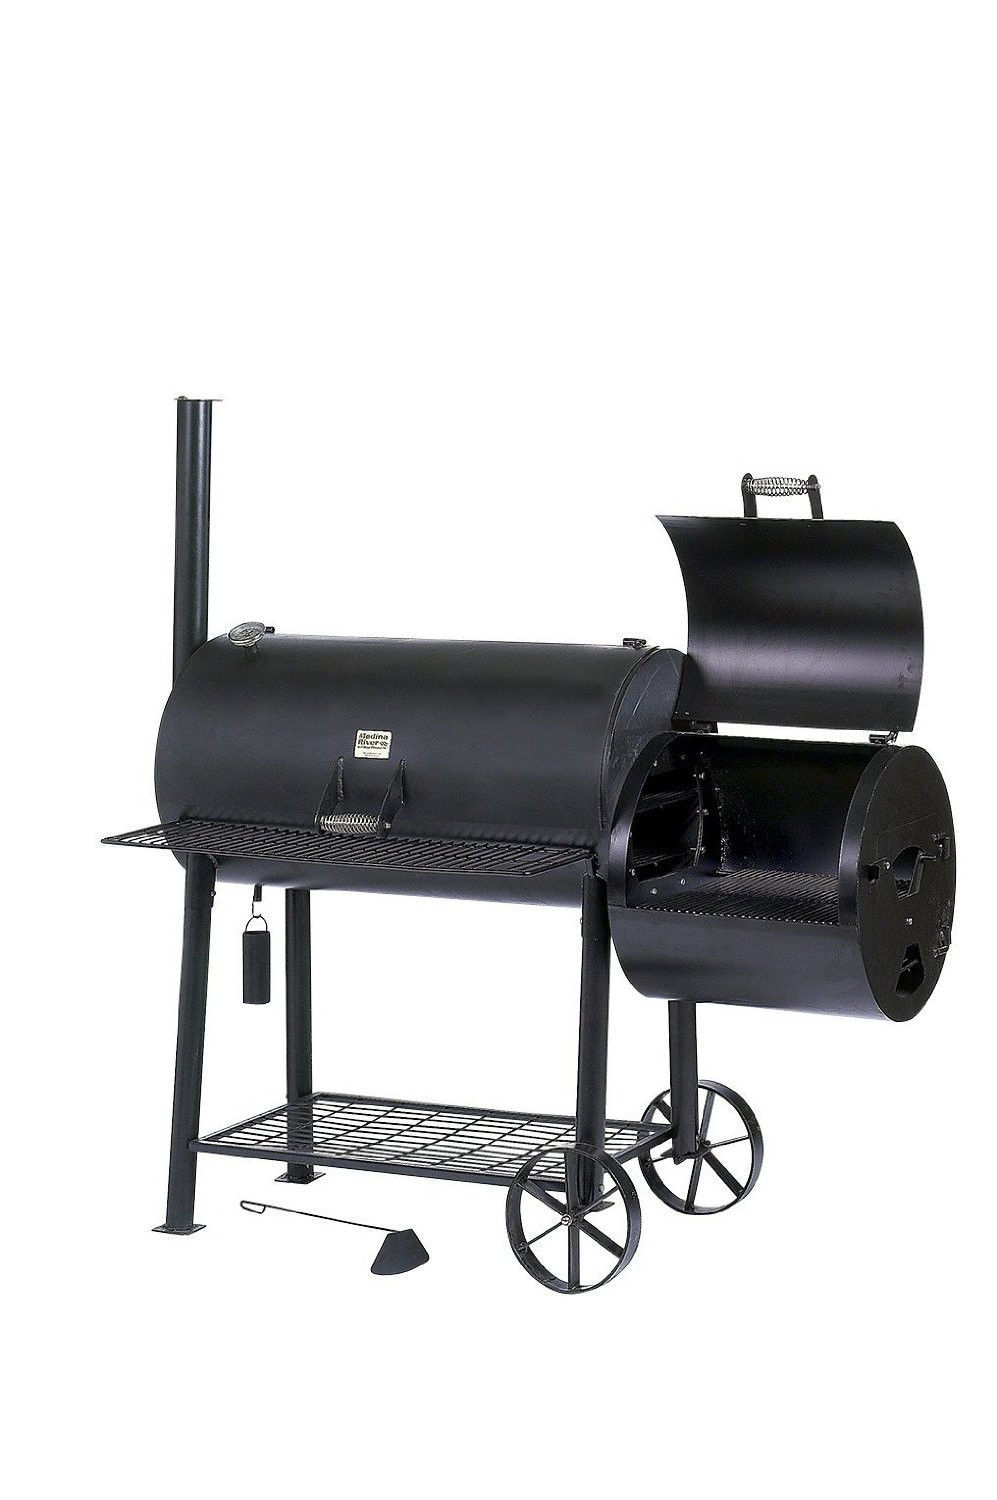 new jumbo charcoal smoker grill combo w side box patio. Black Bedroom Furniture Sets. Home Design Ideas